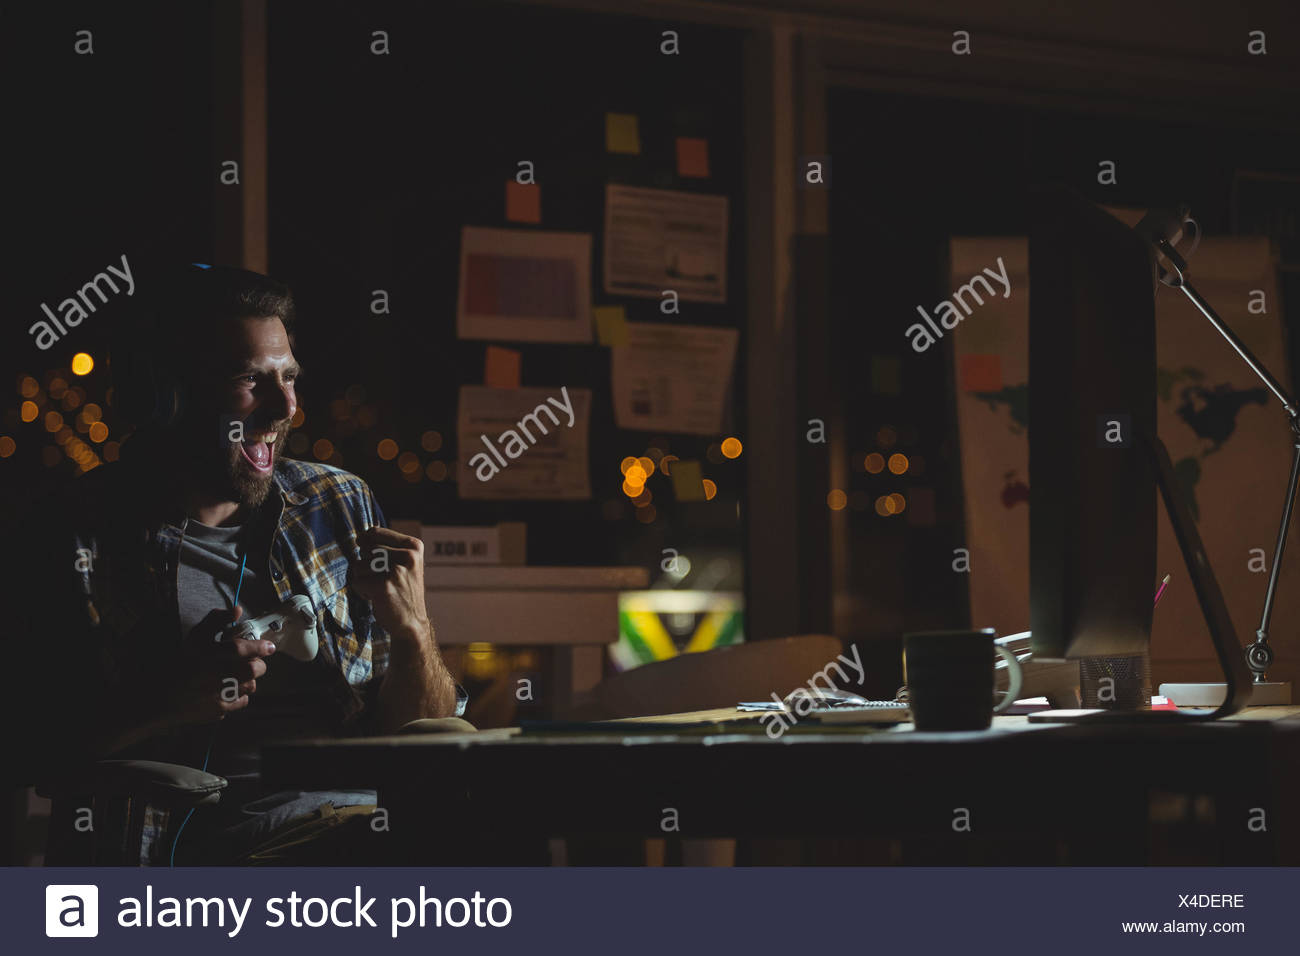 Businessman playing computer games at night - Stock Image